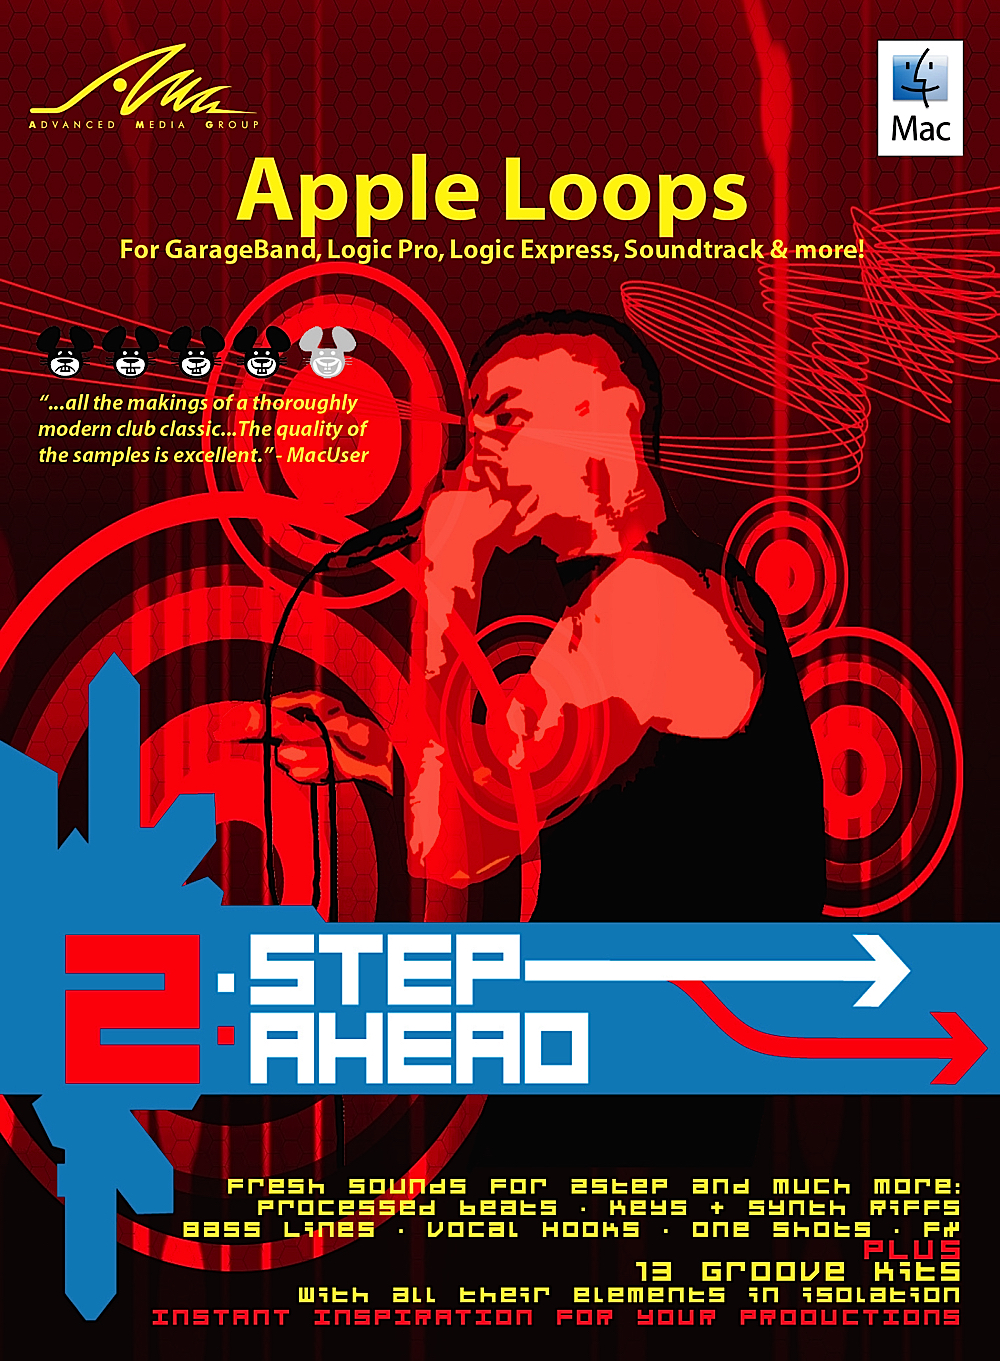 Amg Apple Loops - 2Step Ahead - Apple Loops Library for Apple GarageBand & Logic - DOWNLOAD [Download]